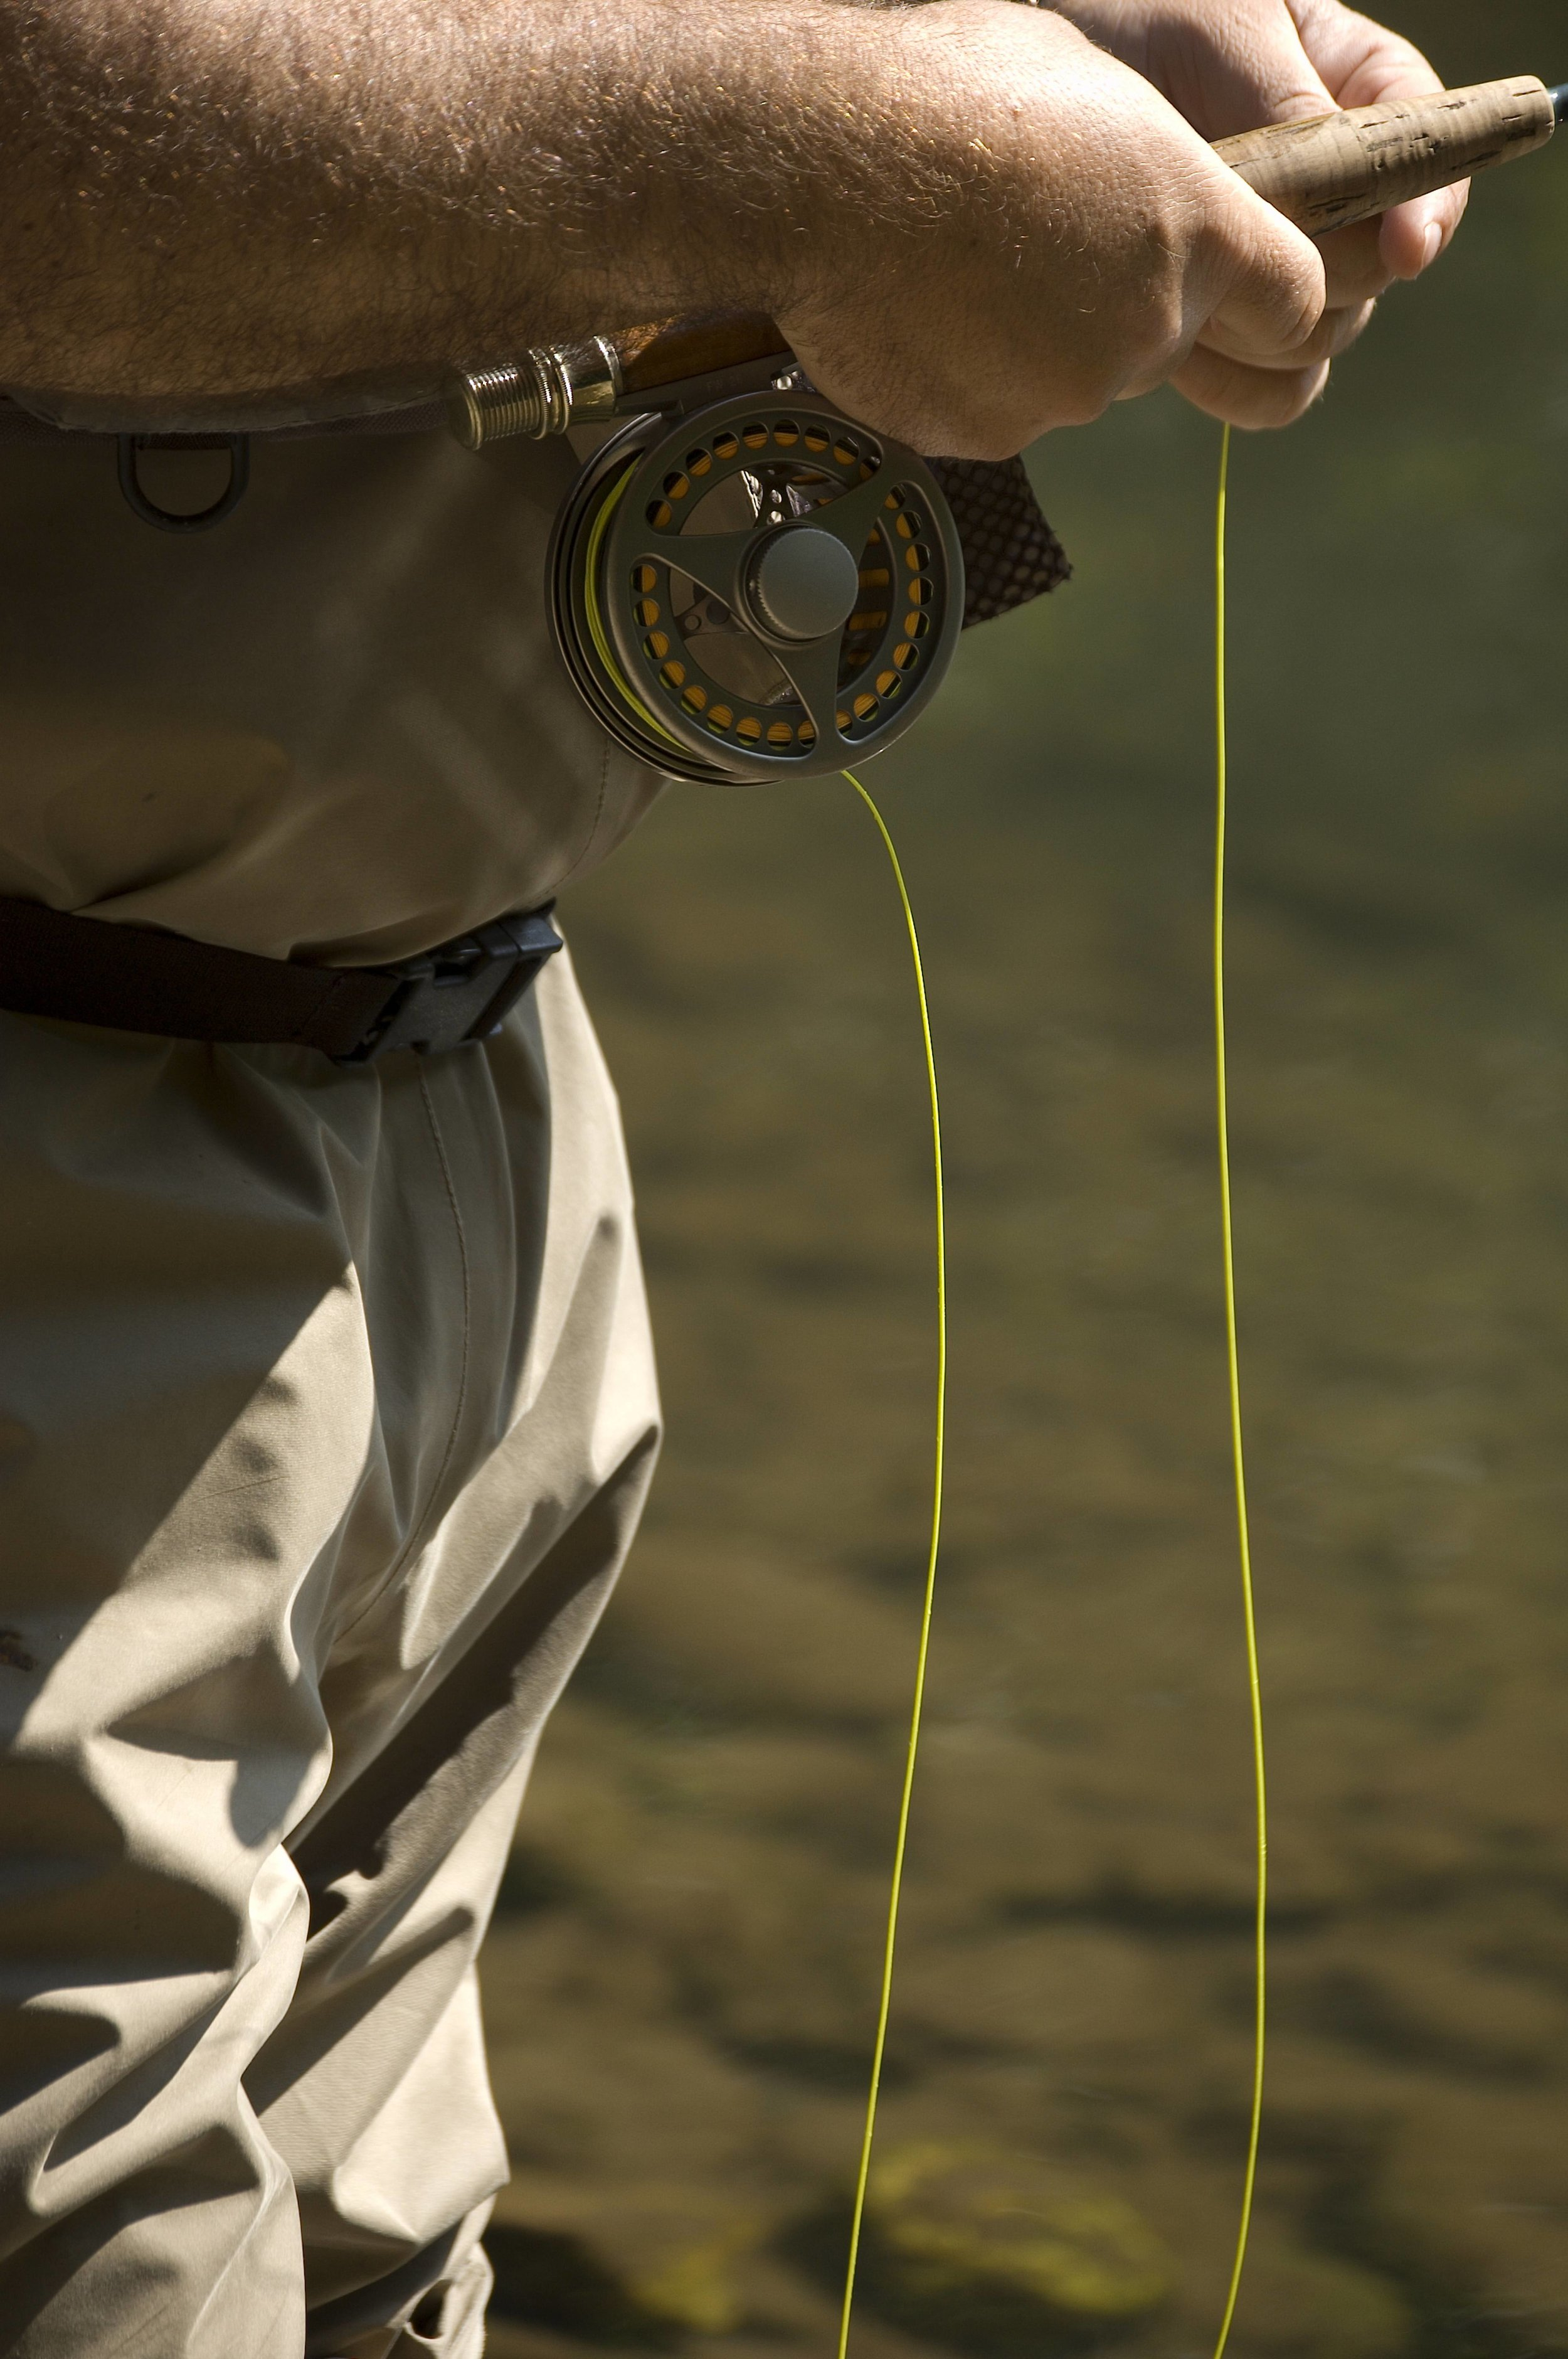 Fly fishing and trout fishing are popular at Catawba River Club